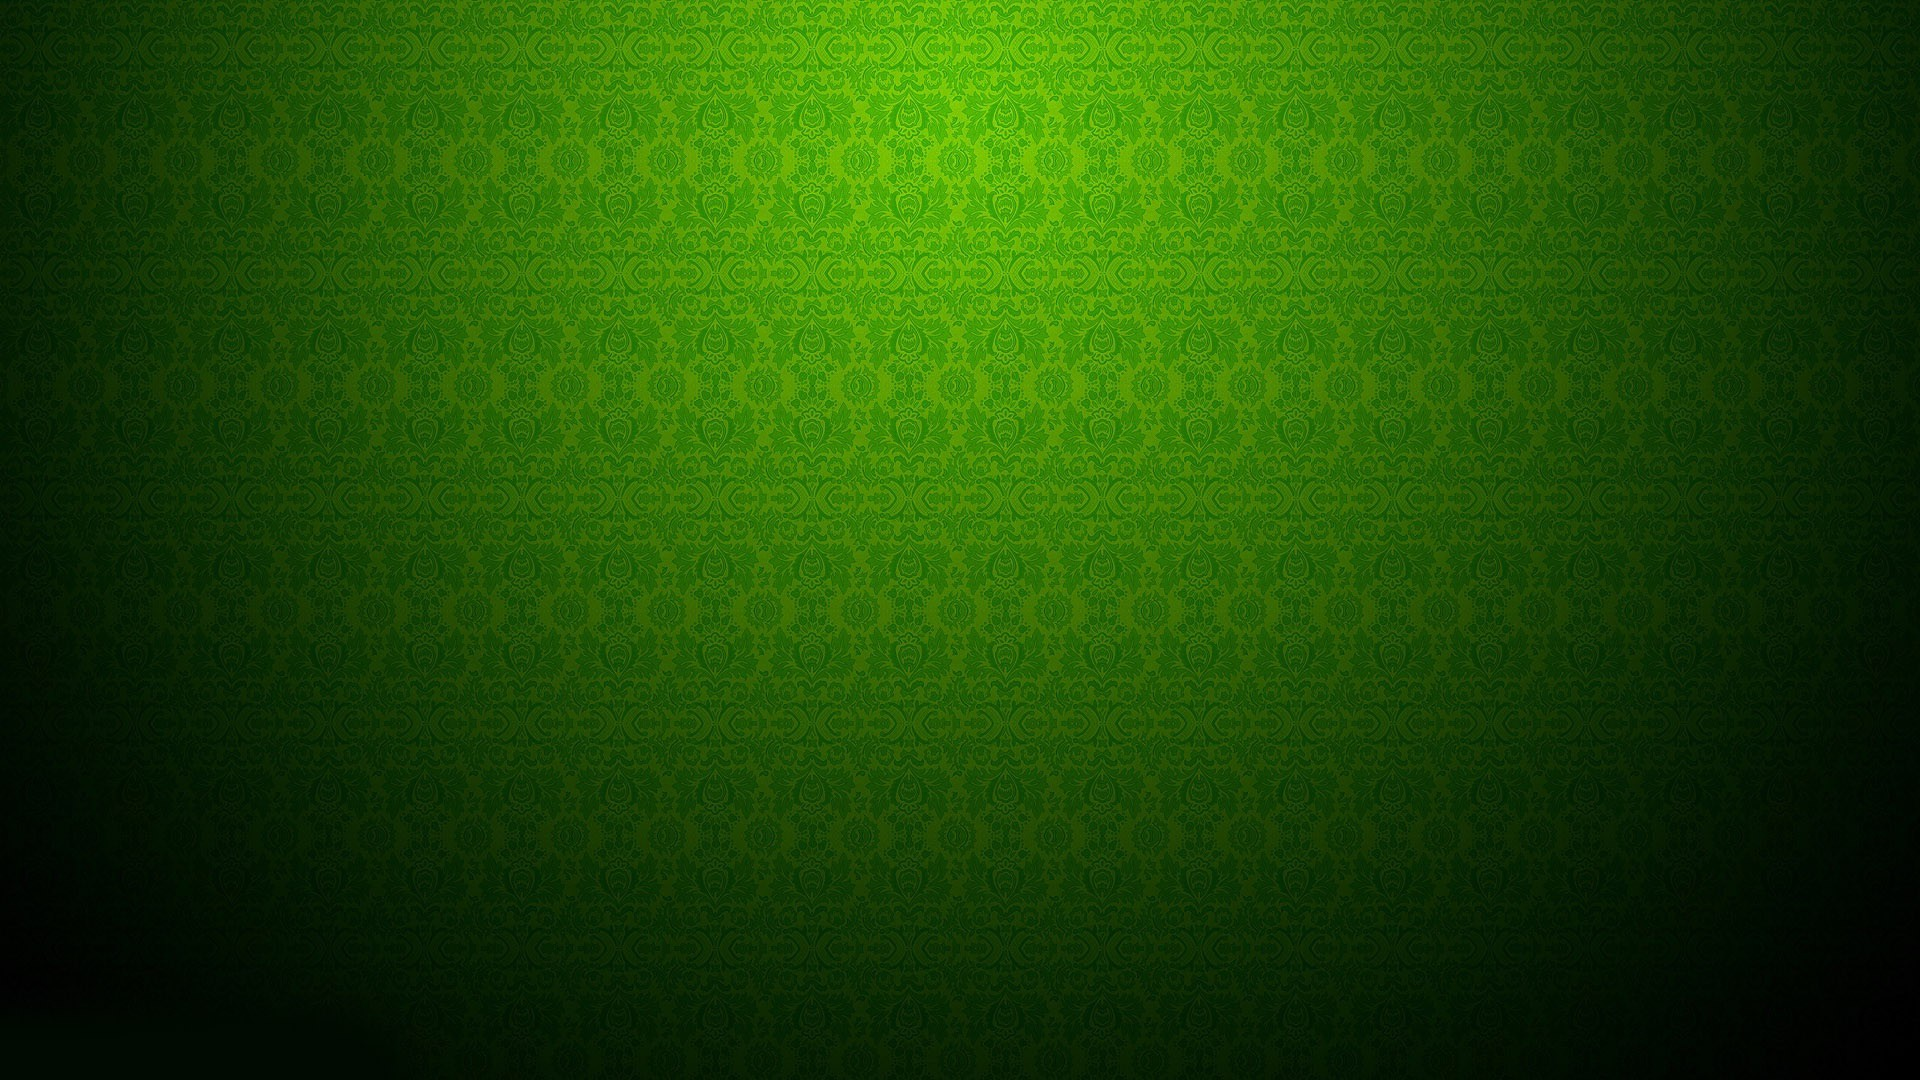 Green Vintage Pattern Wallpaper 10677 1920x1080